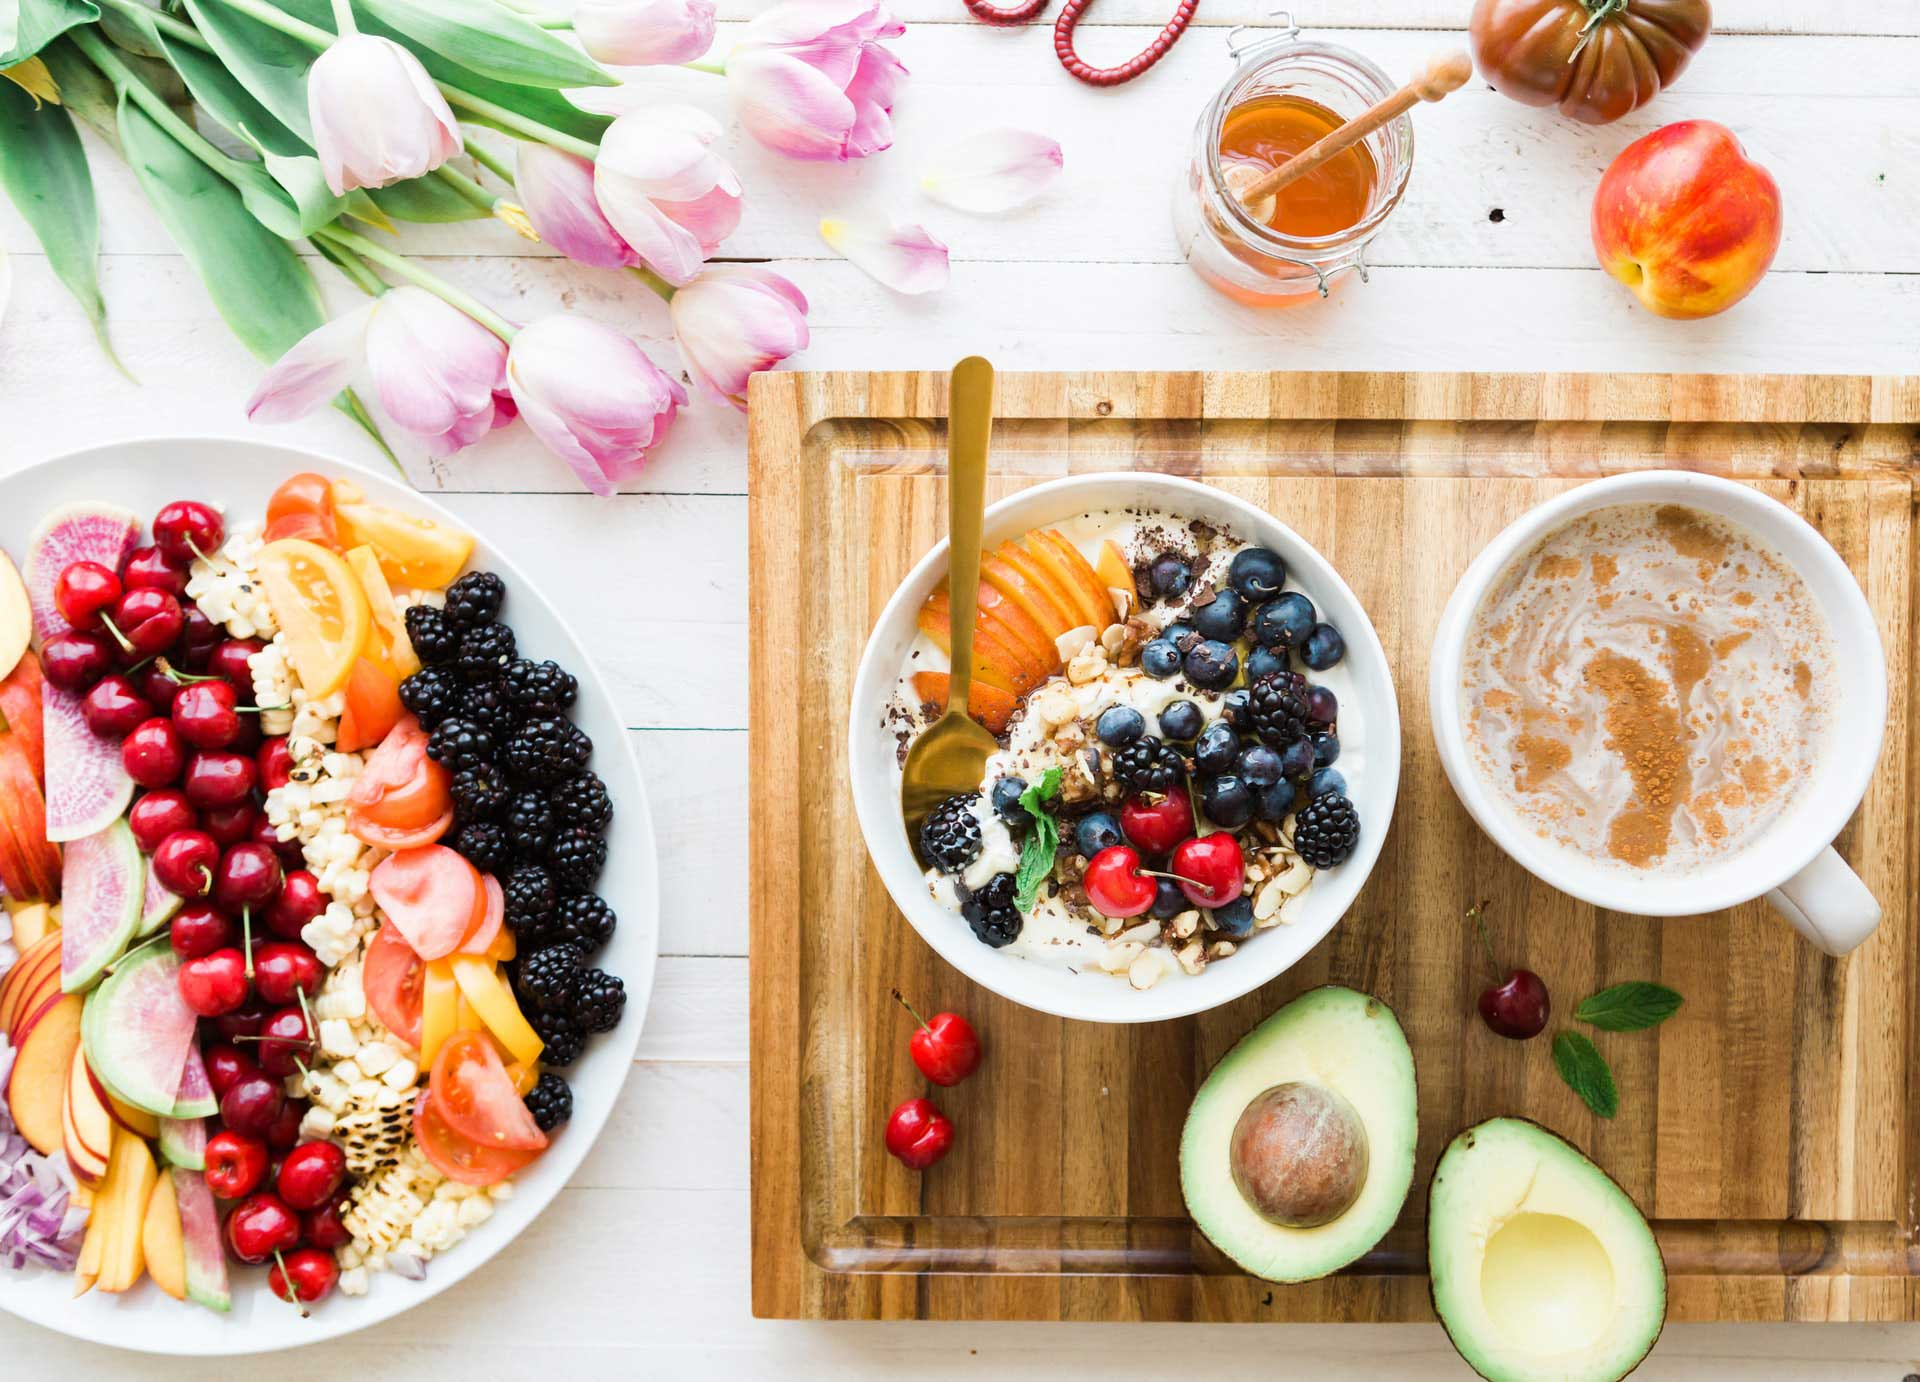 Fat Burning Foods - How Do They Work?